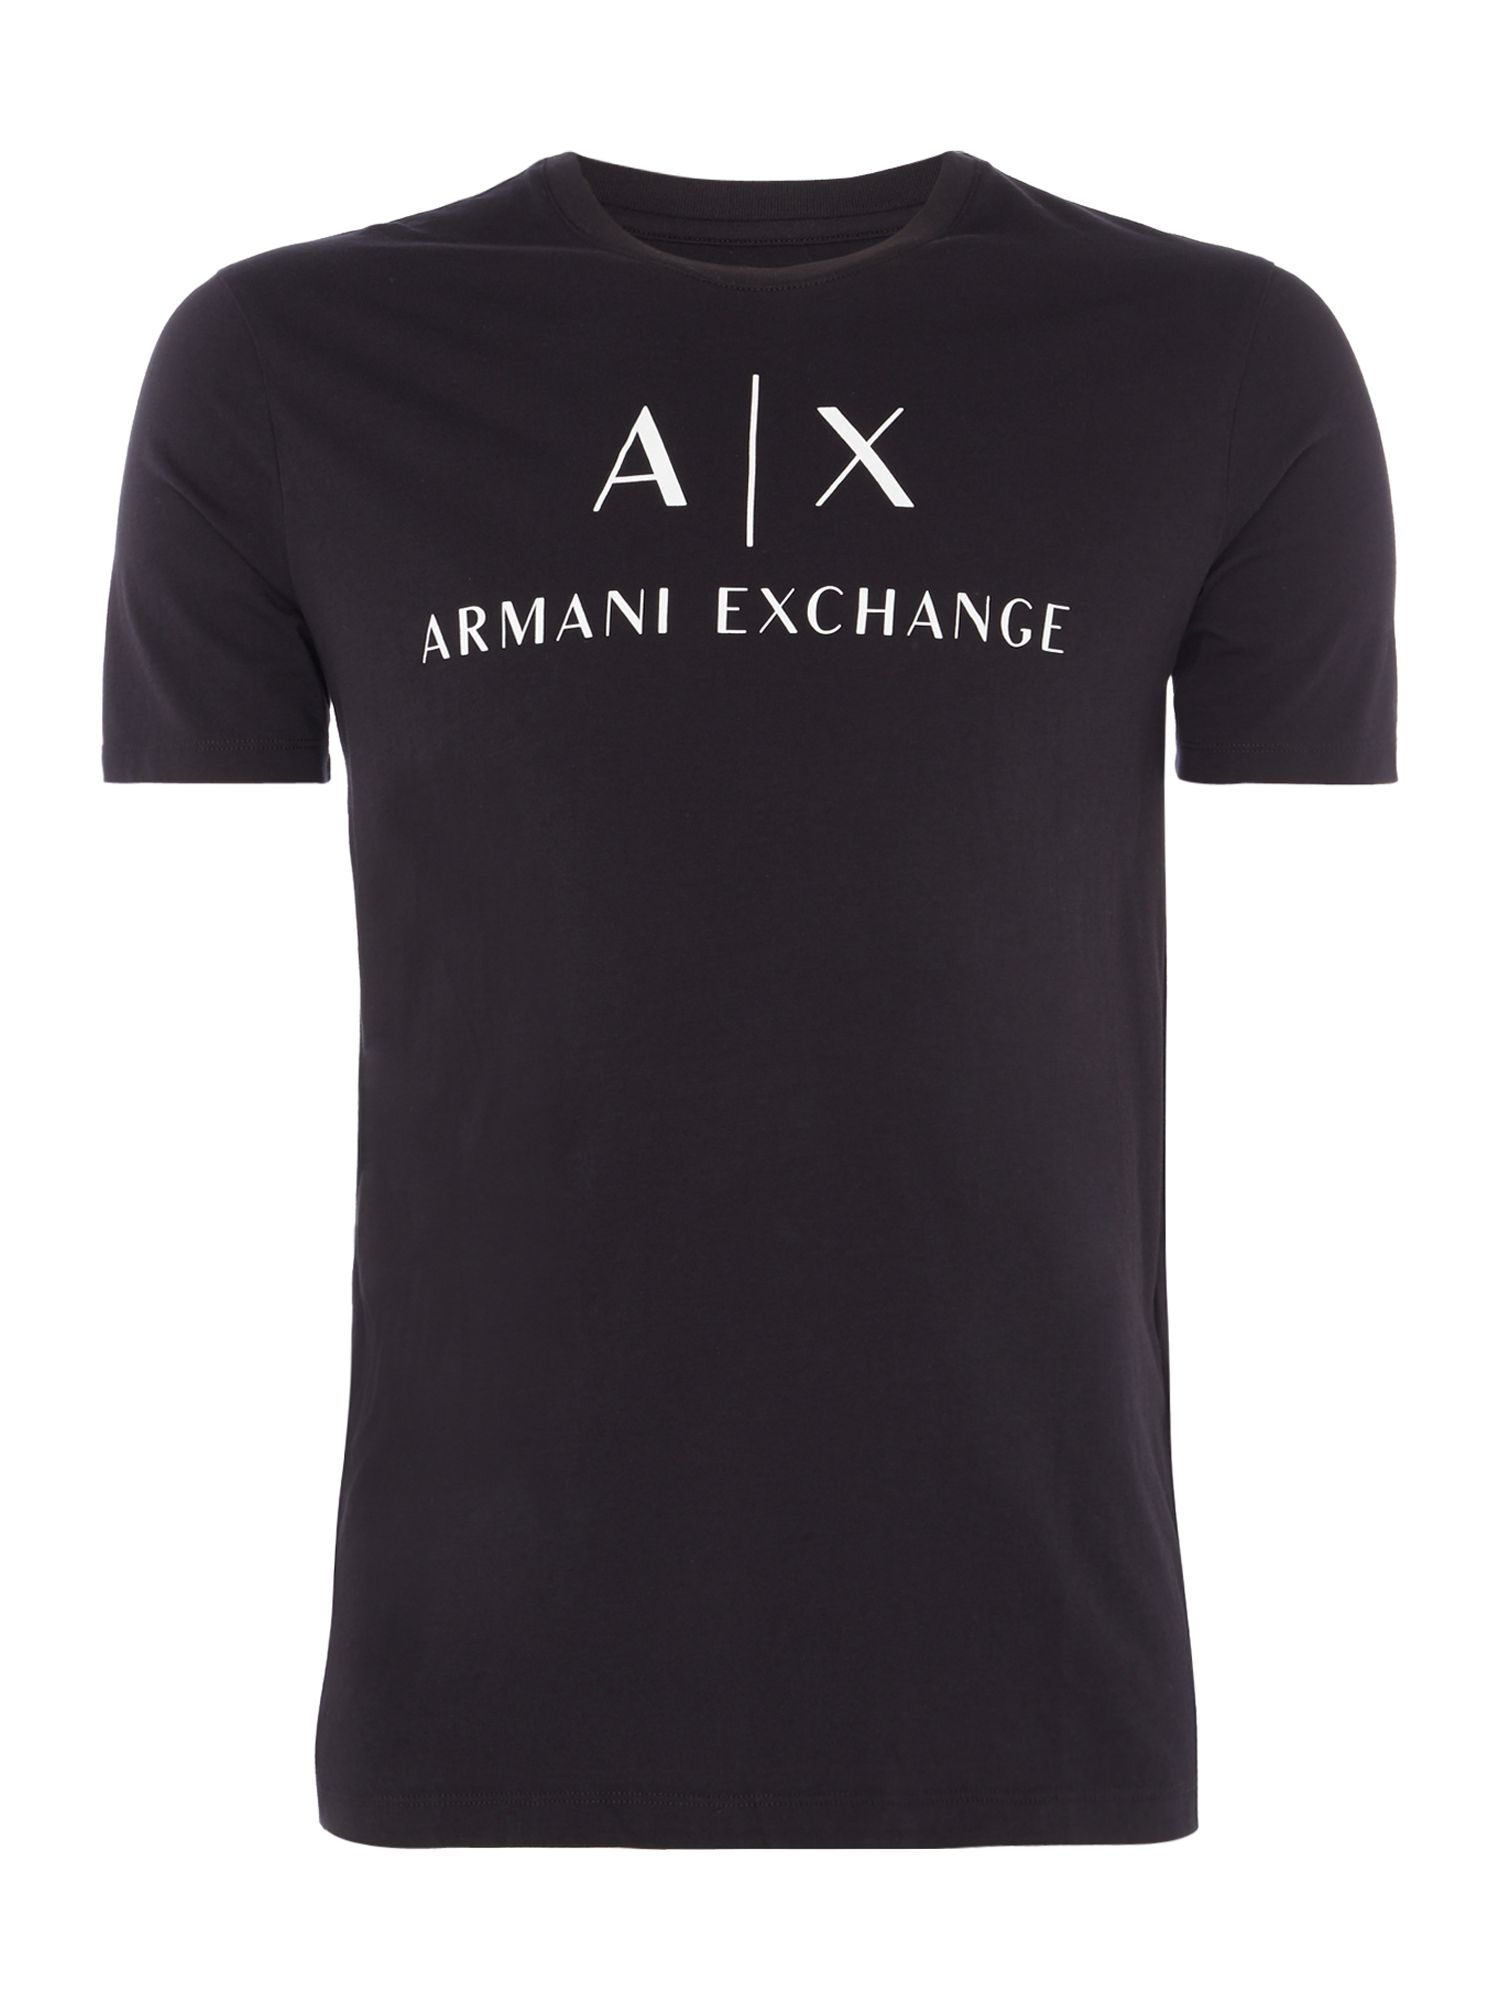 Men's Armani Exchange AX Logo Tshirt, Black